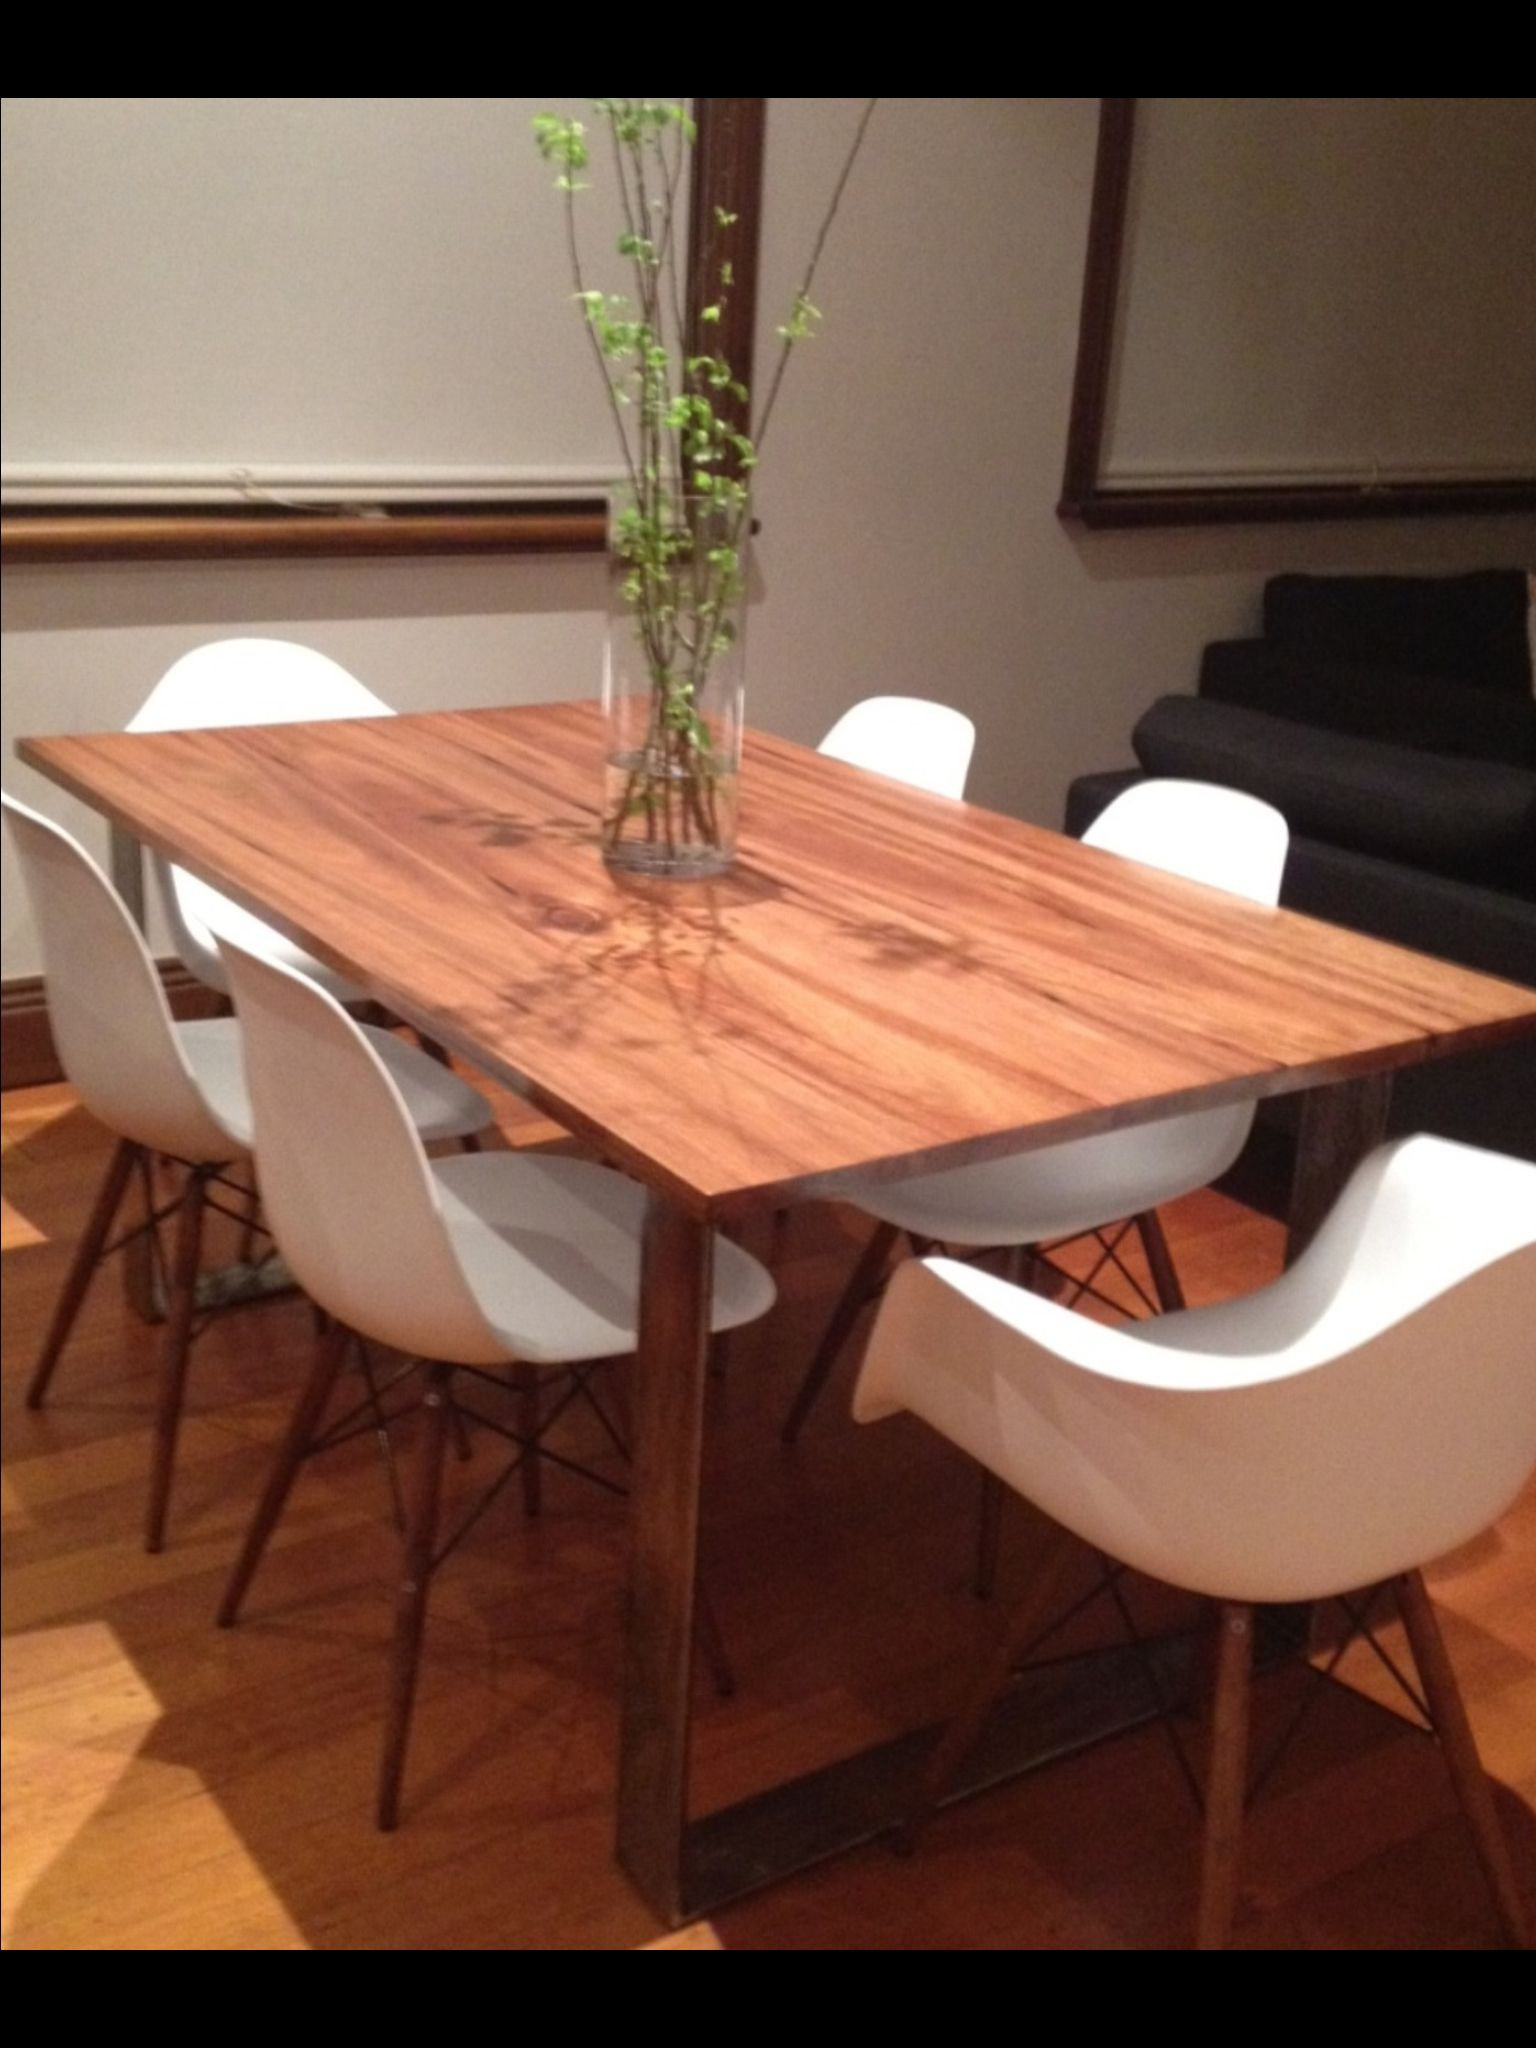 Reclaimed Timber Dining Table Melbourne